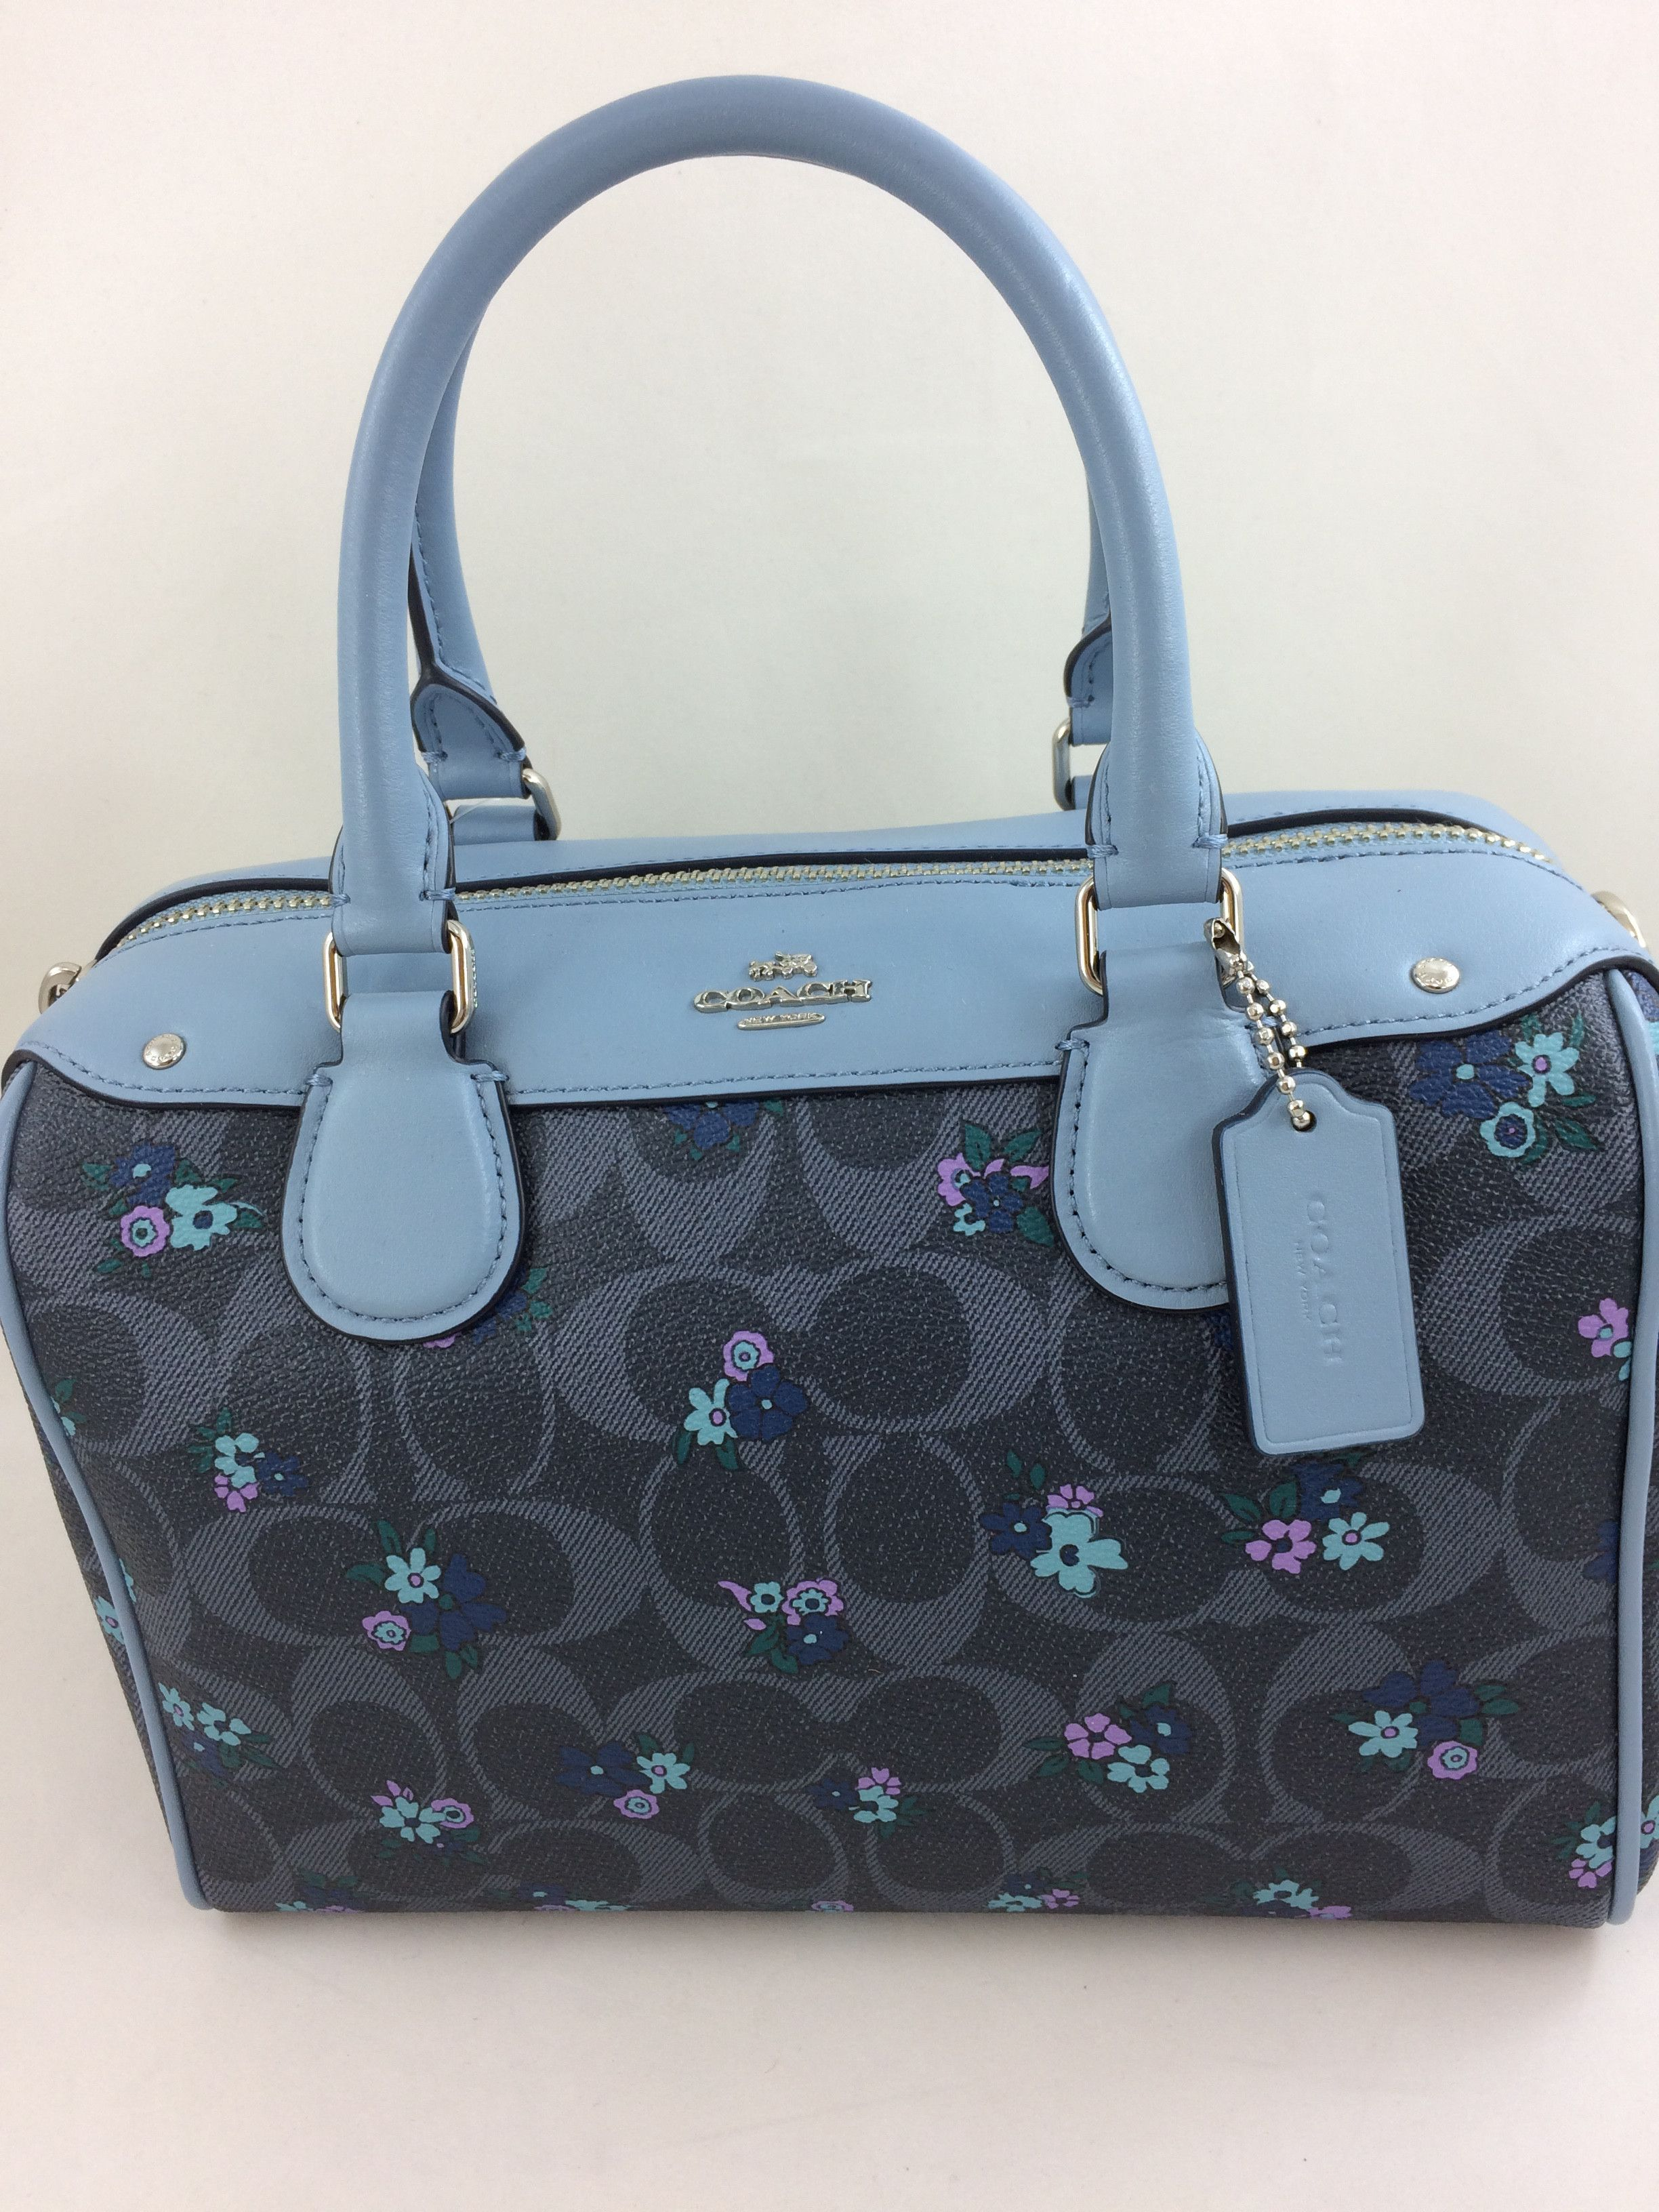 370df4d58b New Authentic Coach F59461 Mini Bennett Satchel Handbag  Shoulder Bag in  Ranch Floral Print Blue Multi